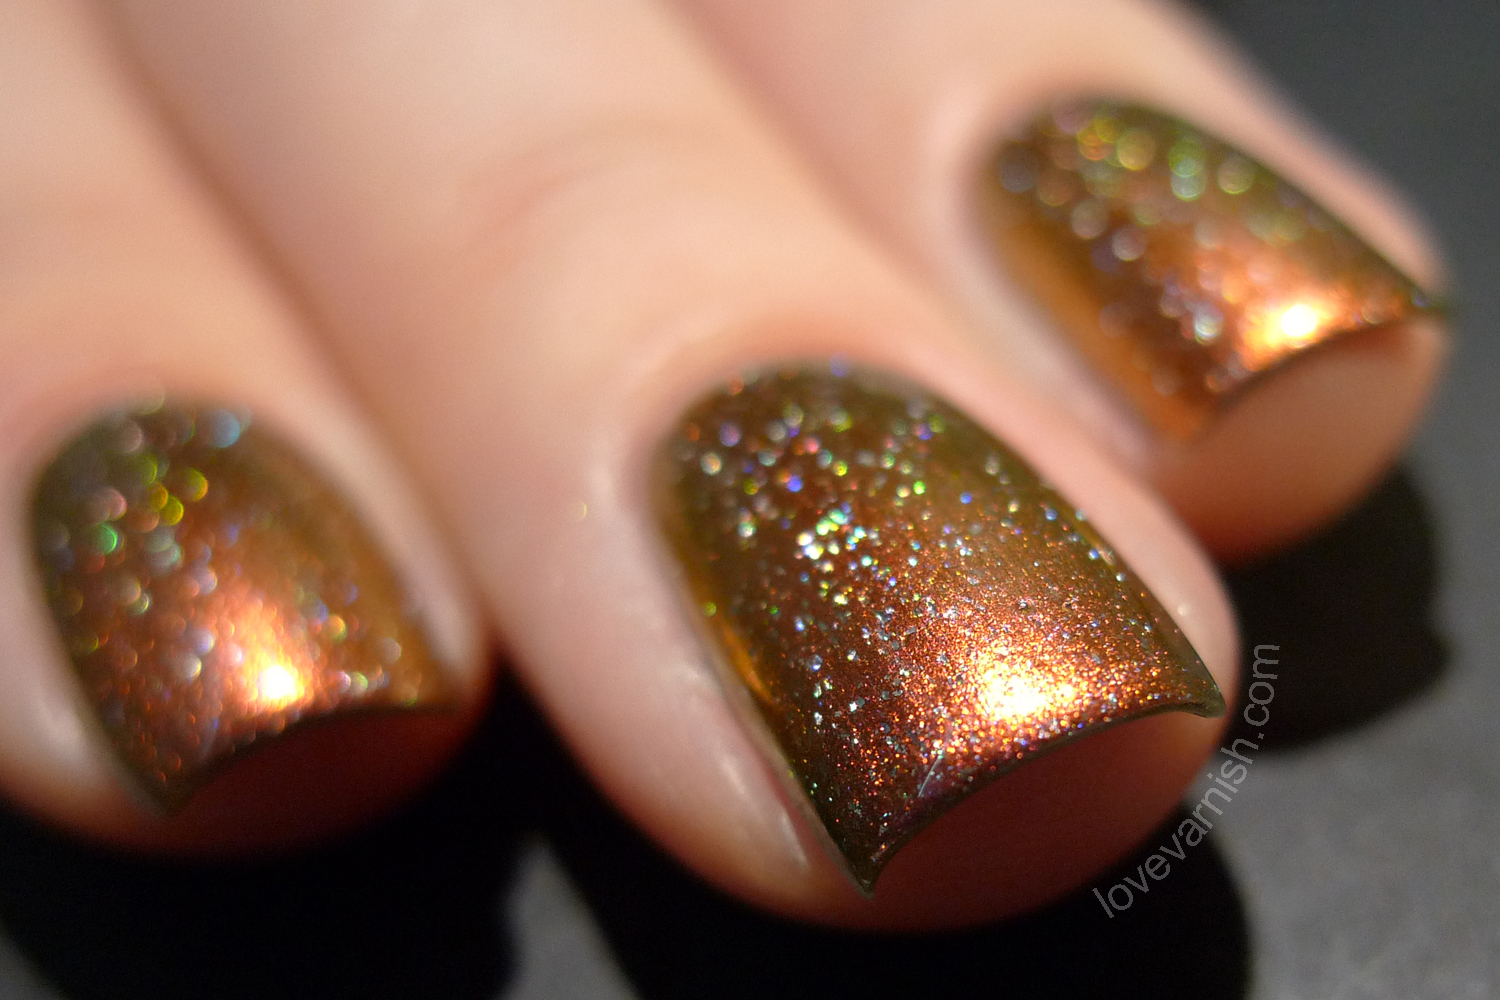 Dance Legend Galaxy Big Bang swatches and review